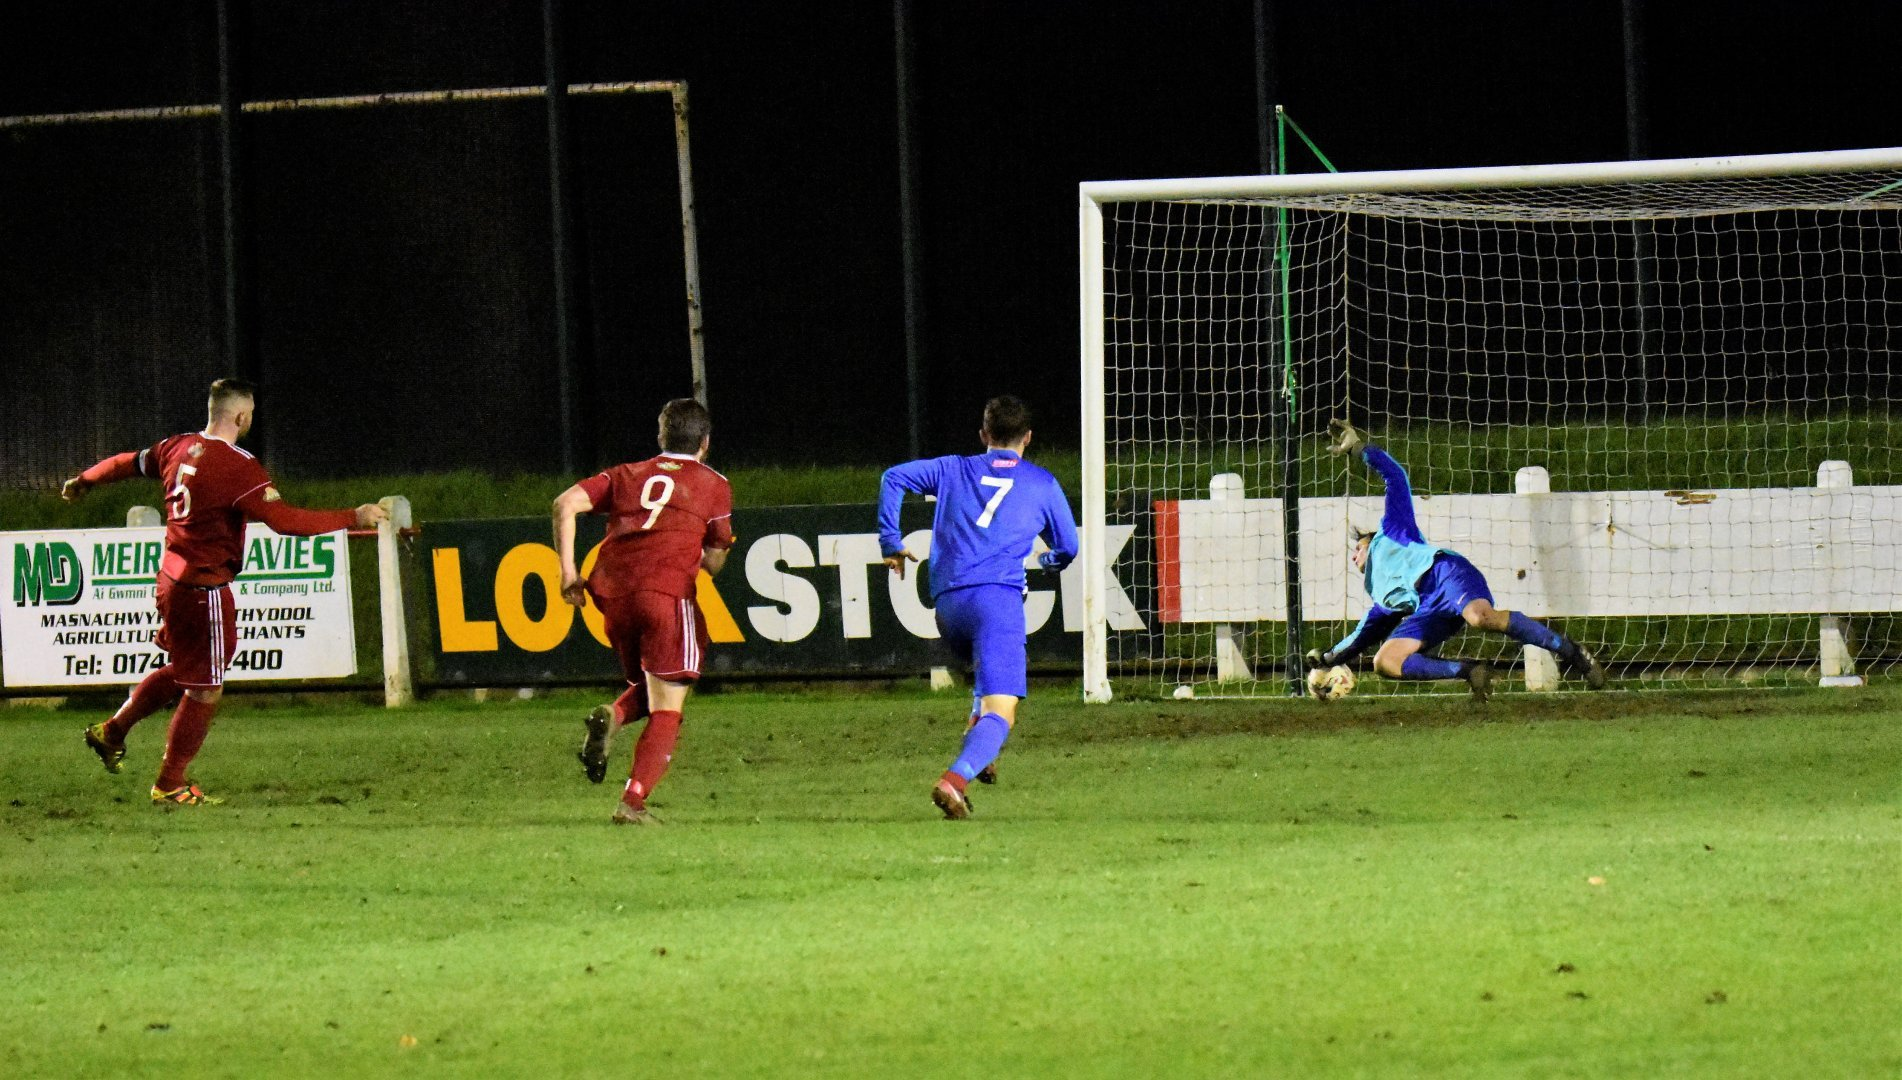 Action from Denbigh Town's 3-1 win over Holyhead. Picture: Steve Whitfield